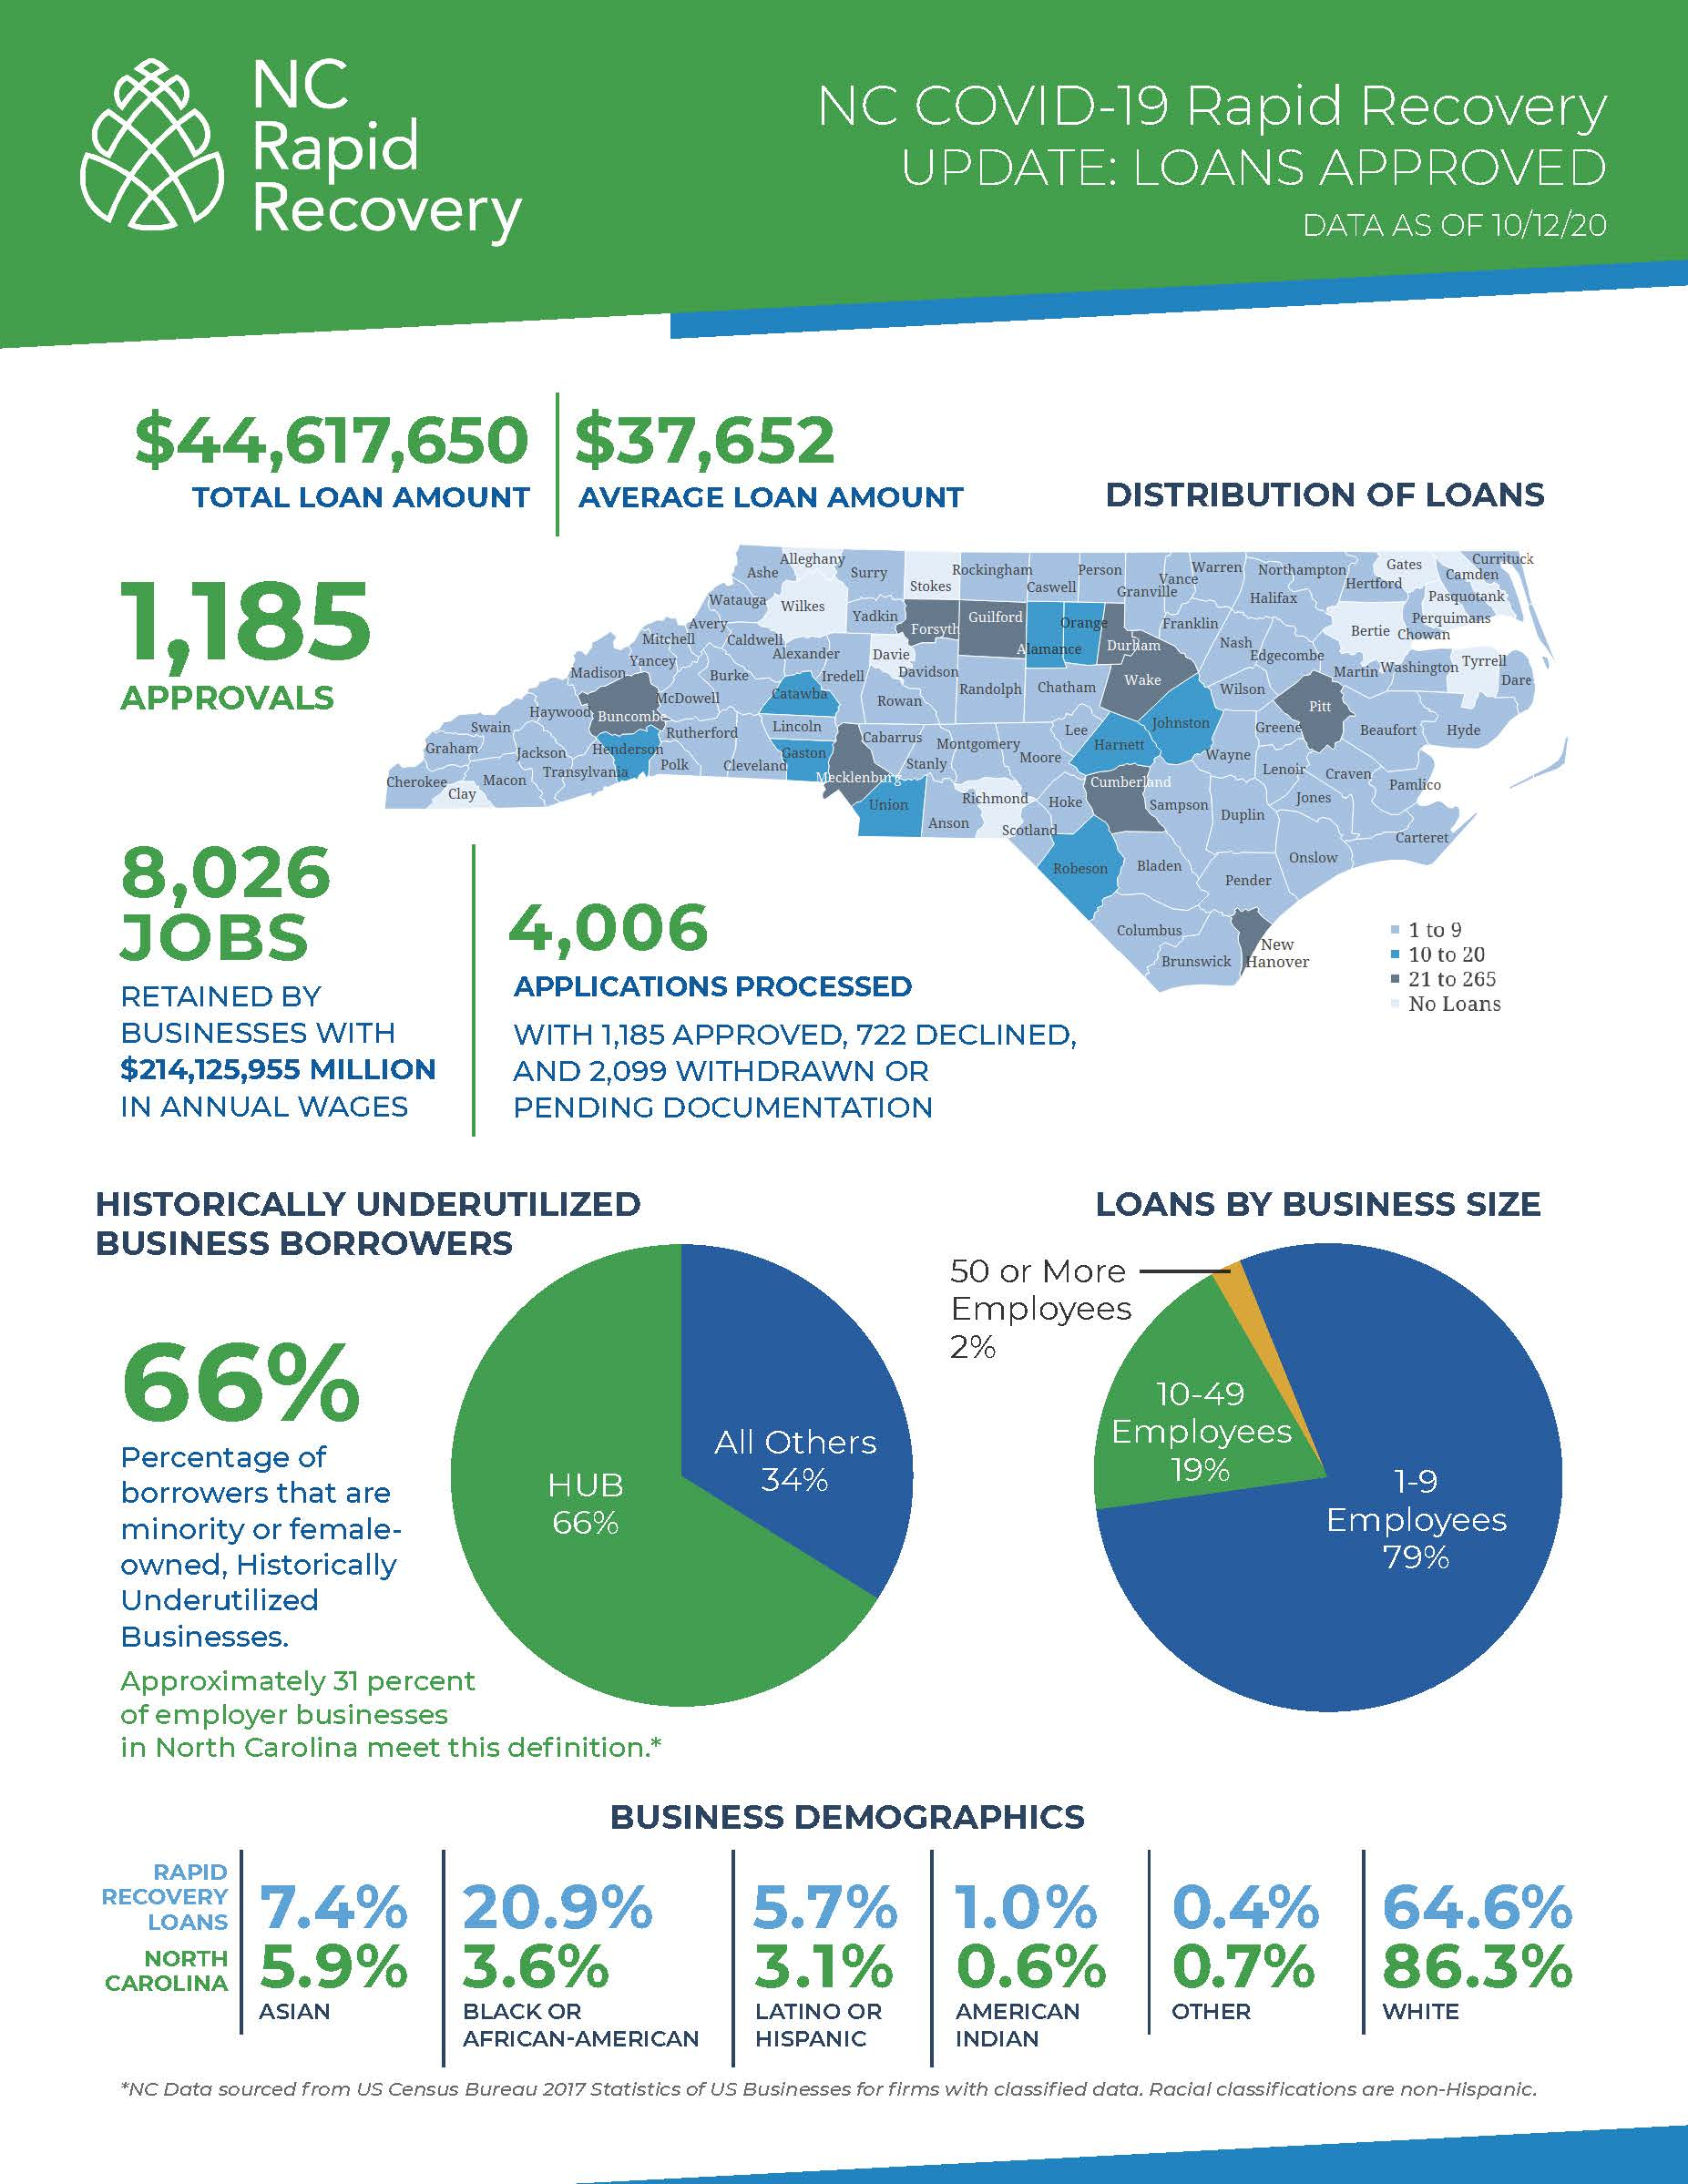 NC Rapid Recovery Statewide Update 10.12.20_Page_2